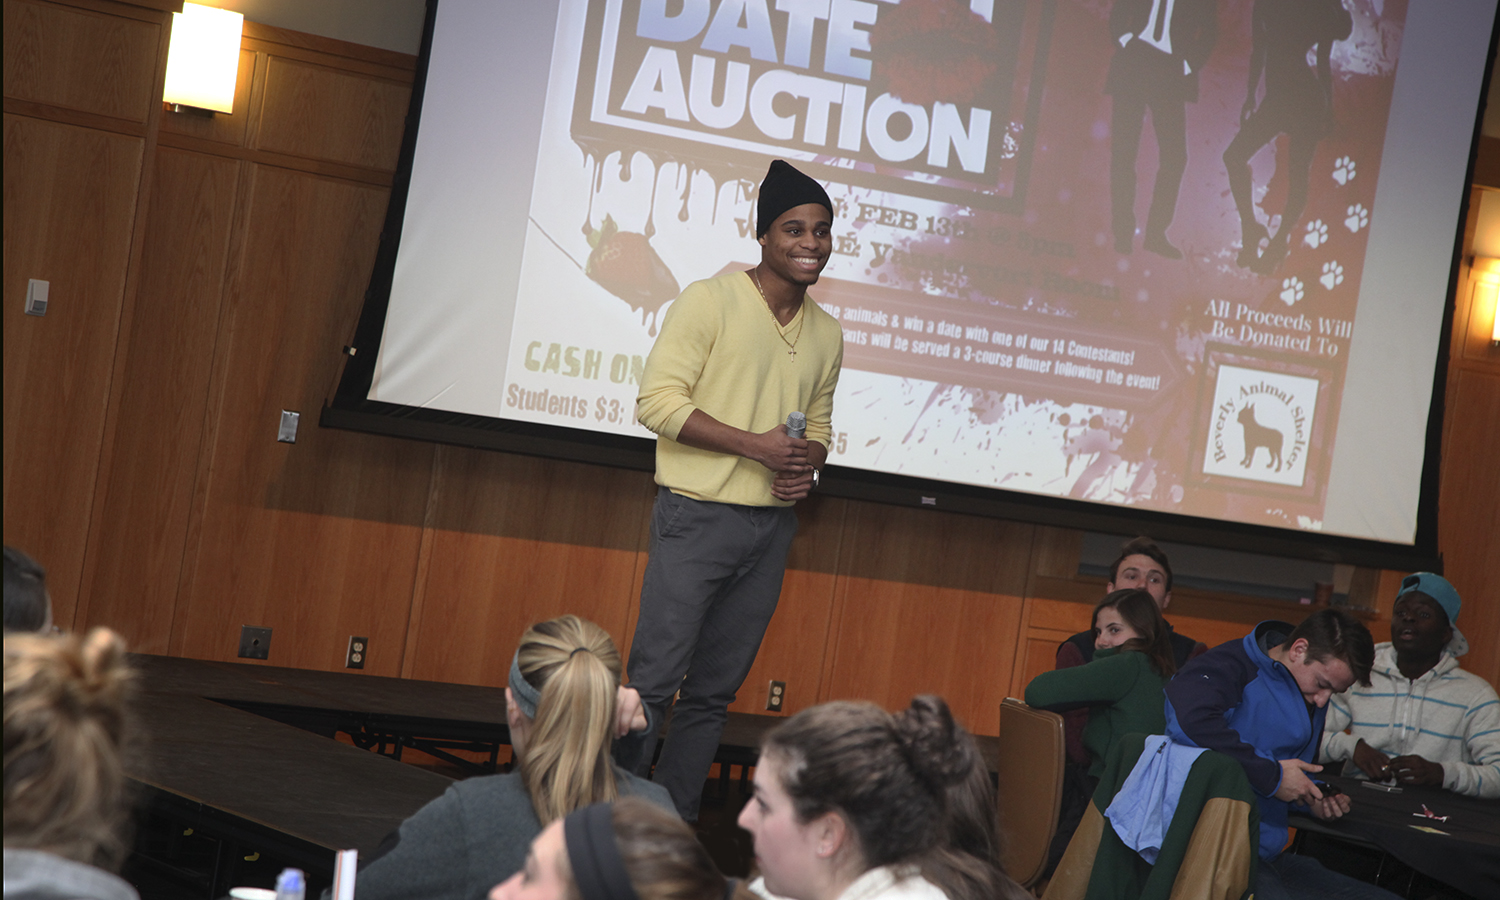 Charity Date Auction 247